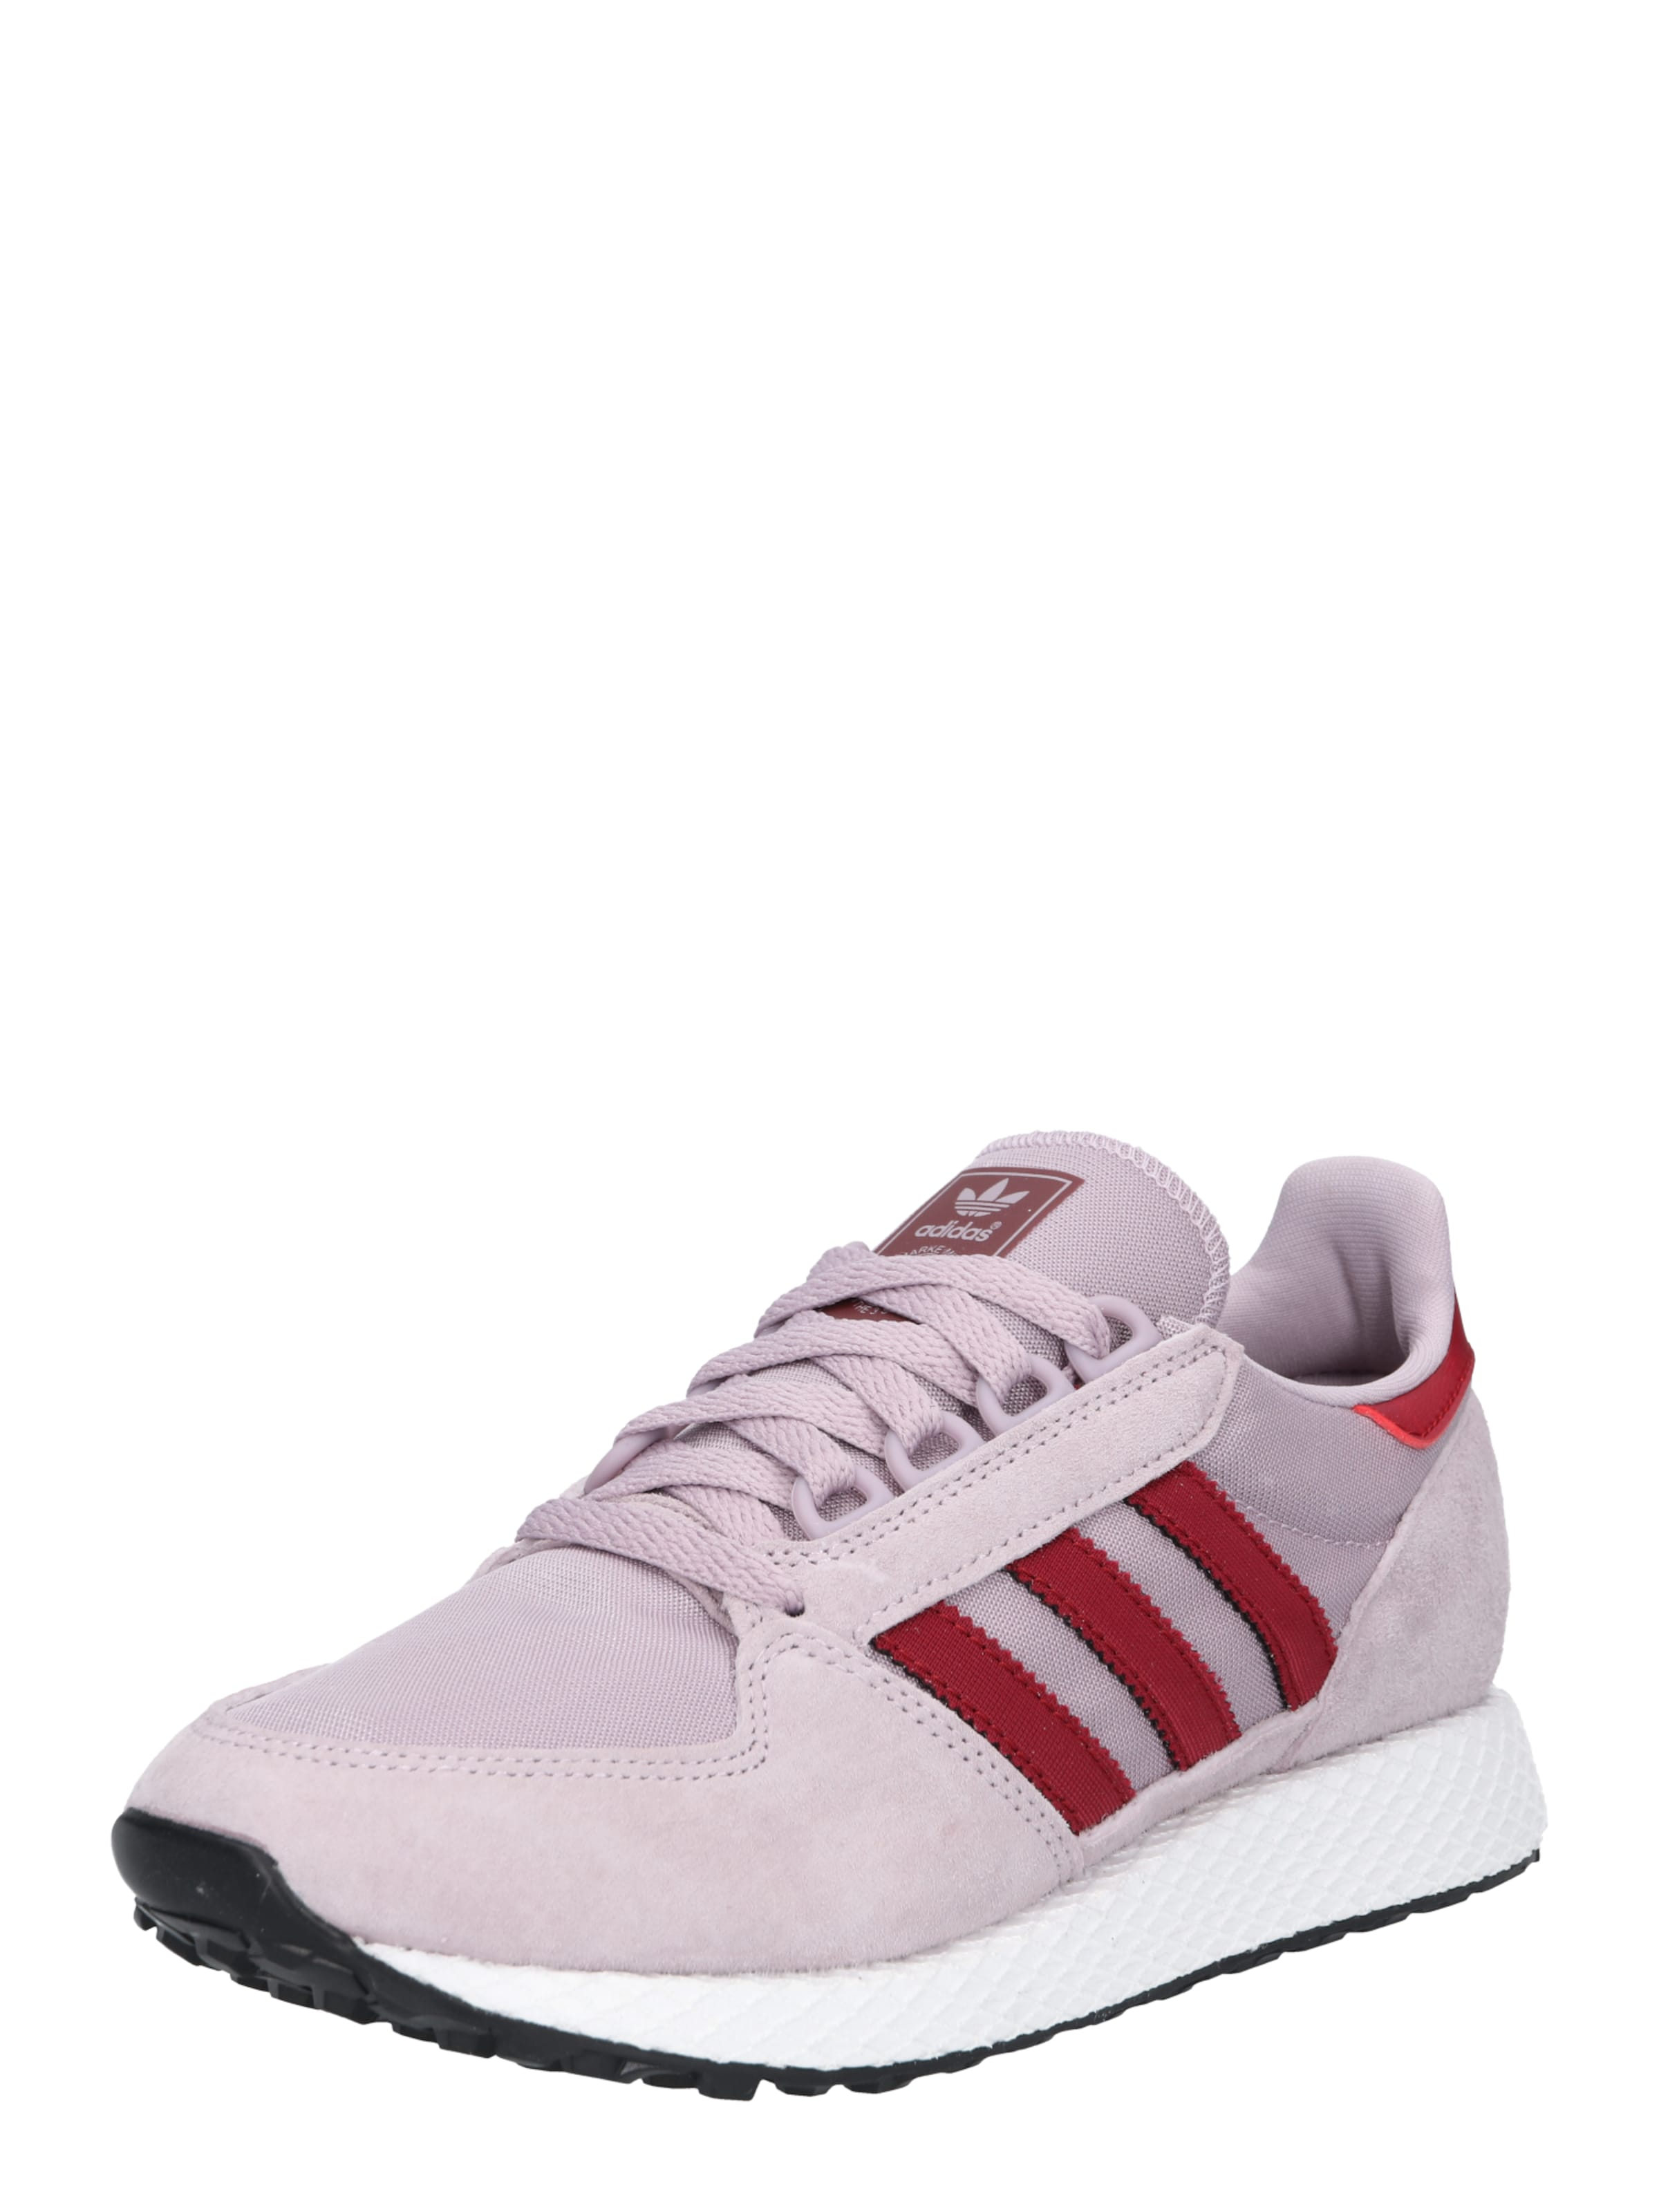 Originals Grove' Sneaker 'forest Adidas MintRot In f6yb7g